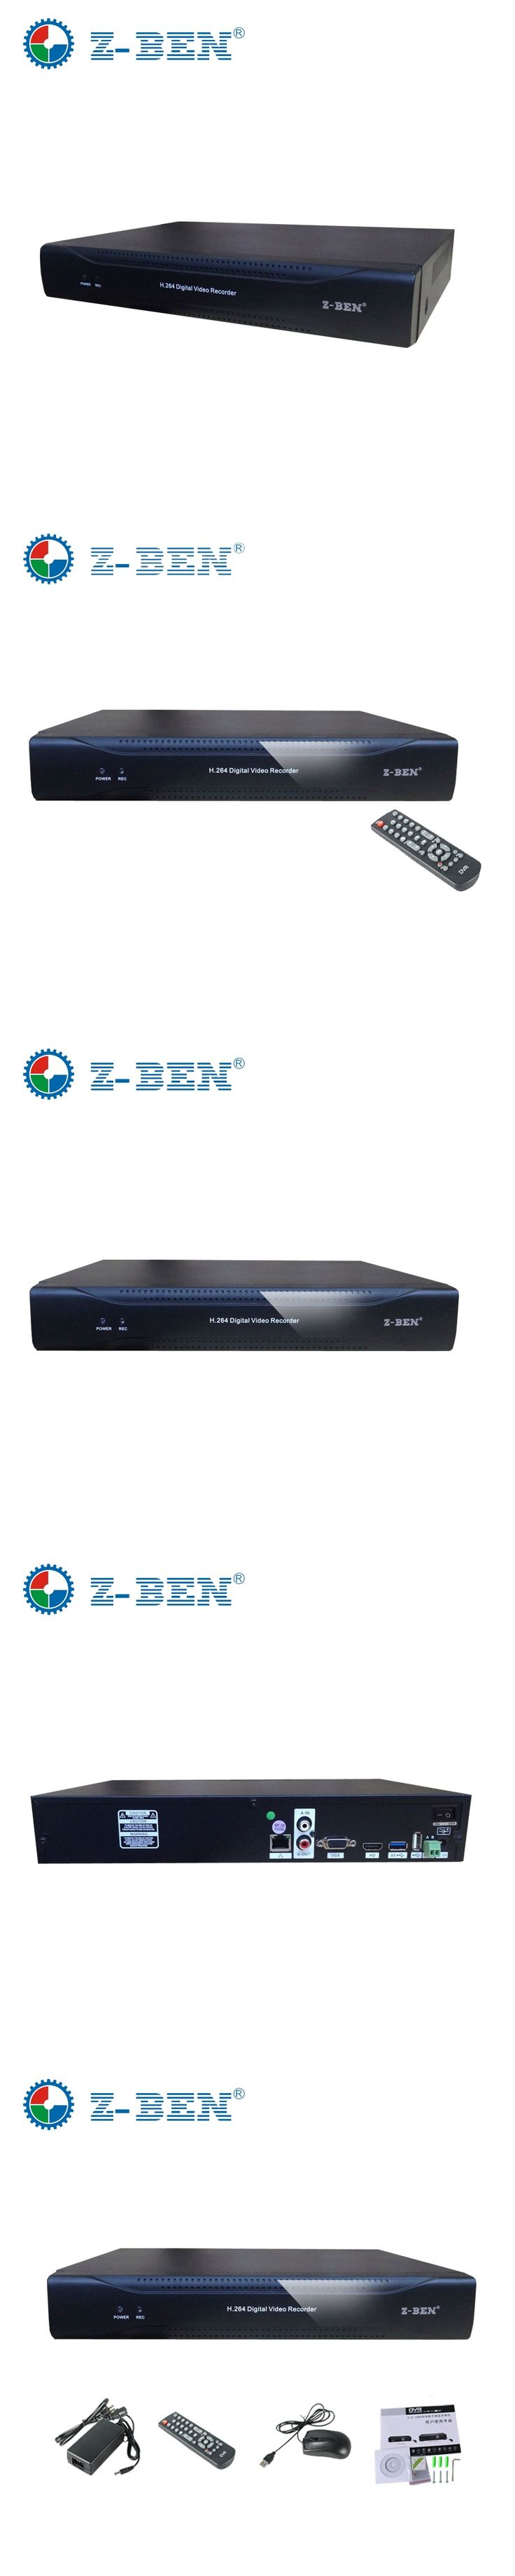 ZBEN Hot Sale CCTV NVR 16CH Onvif H.264 HDMI 1080P Network Video Recorder for IP Camera NVR 16 Channel 960P 8 Channel  P2P Cloud